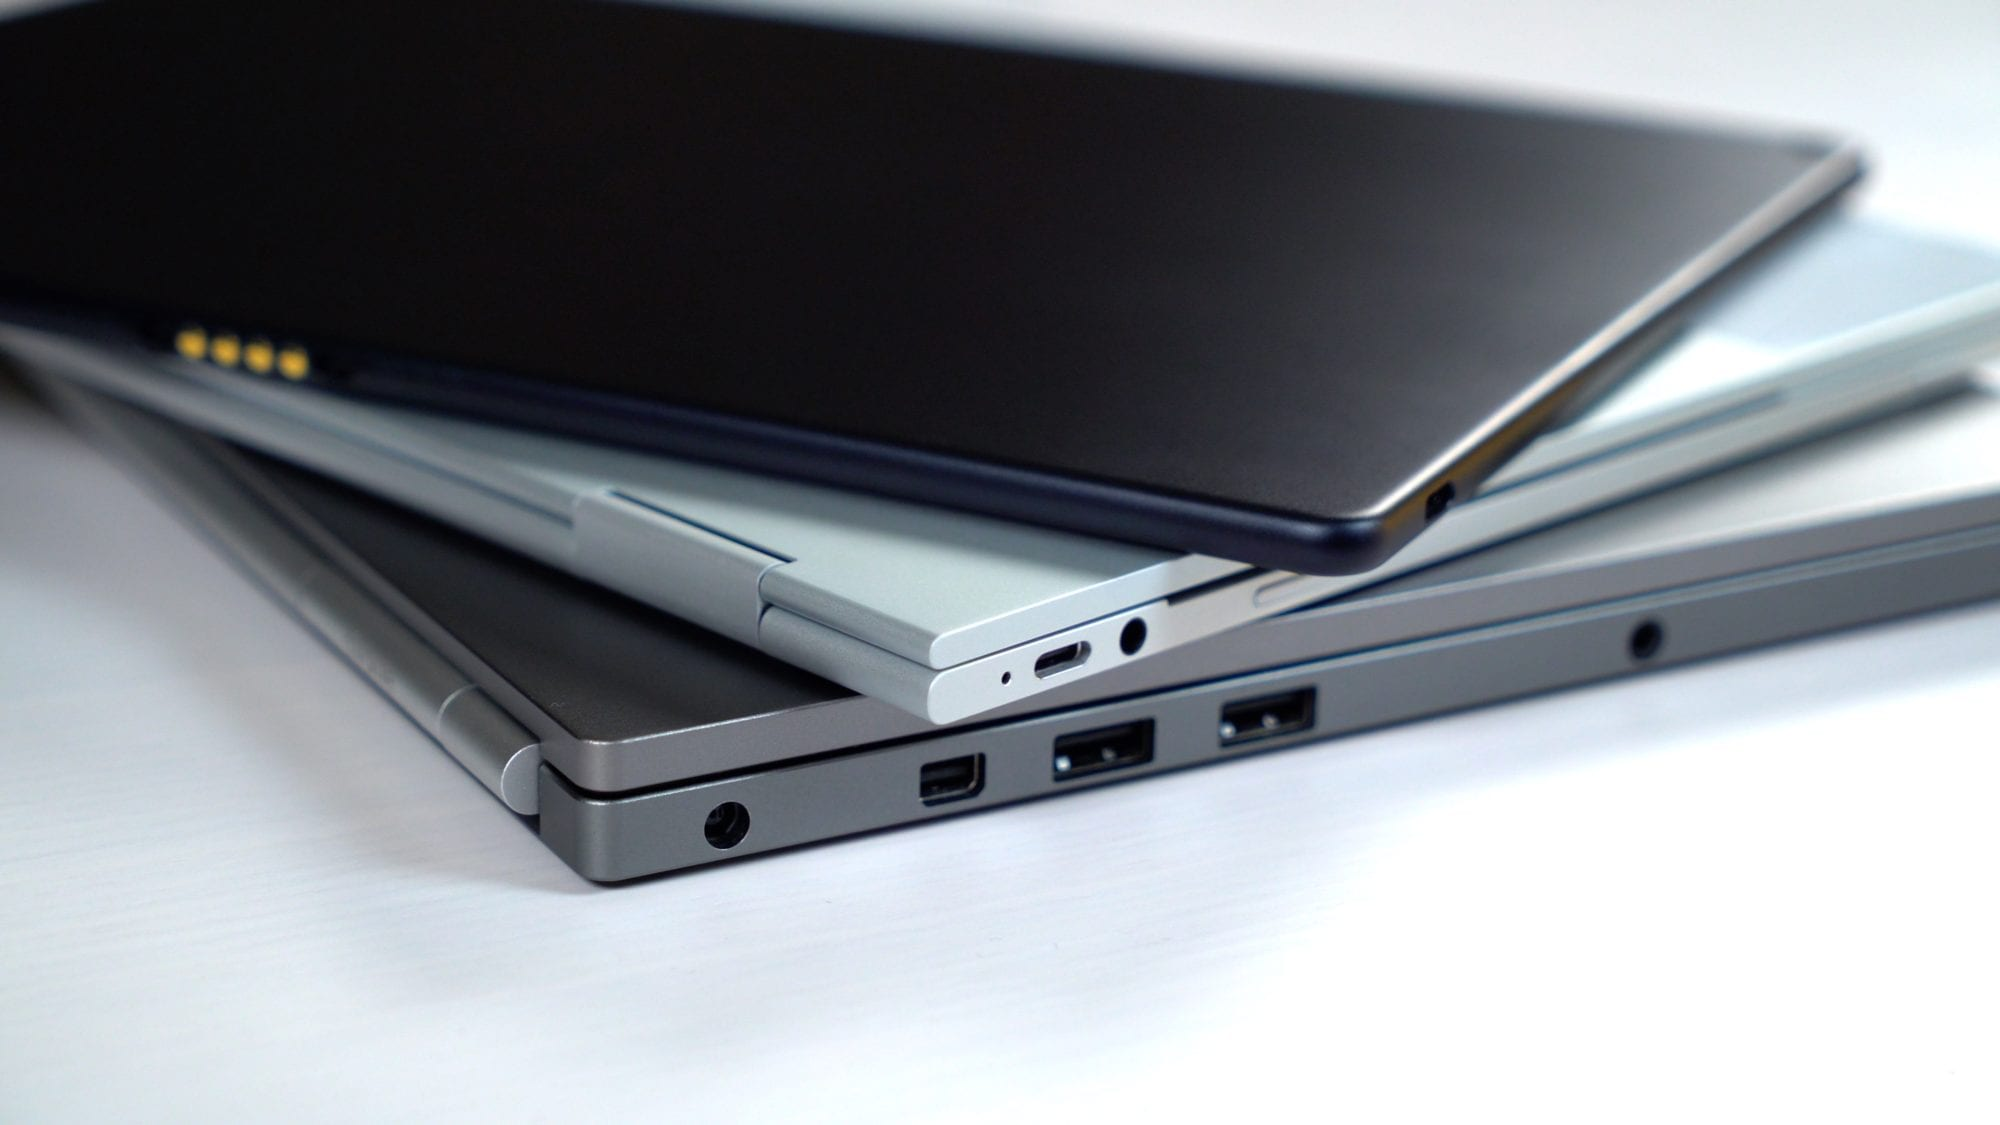 Why I'm Not Worried About Google's Laptop & Tablet Employee Team Shift